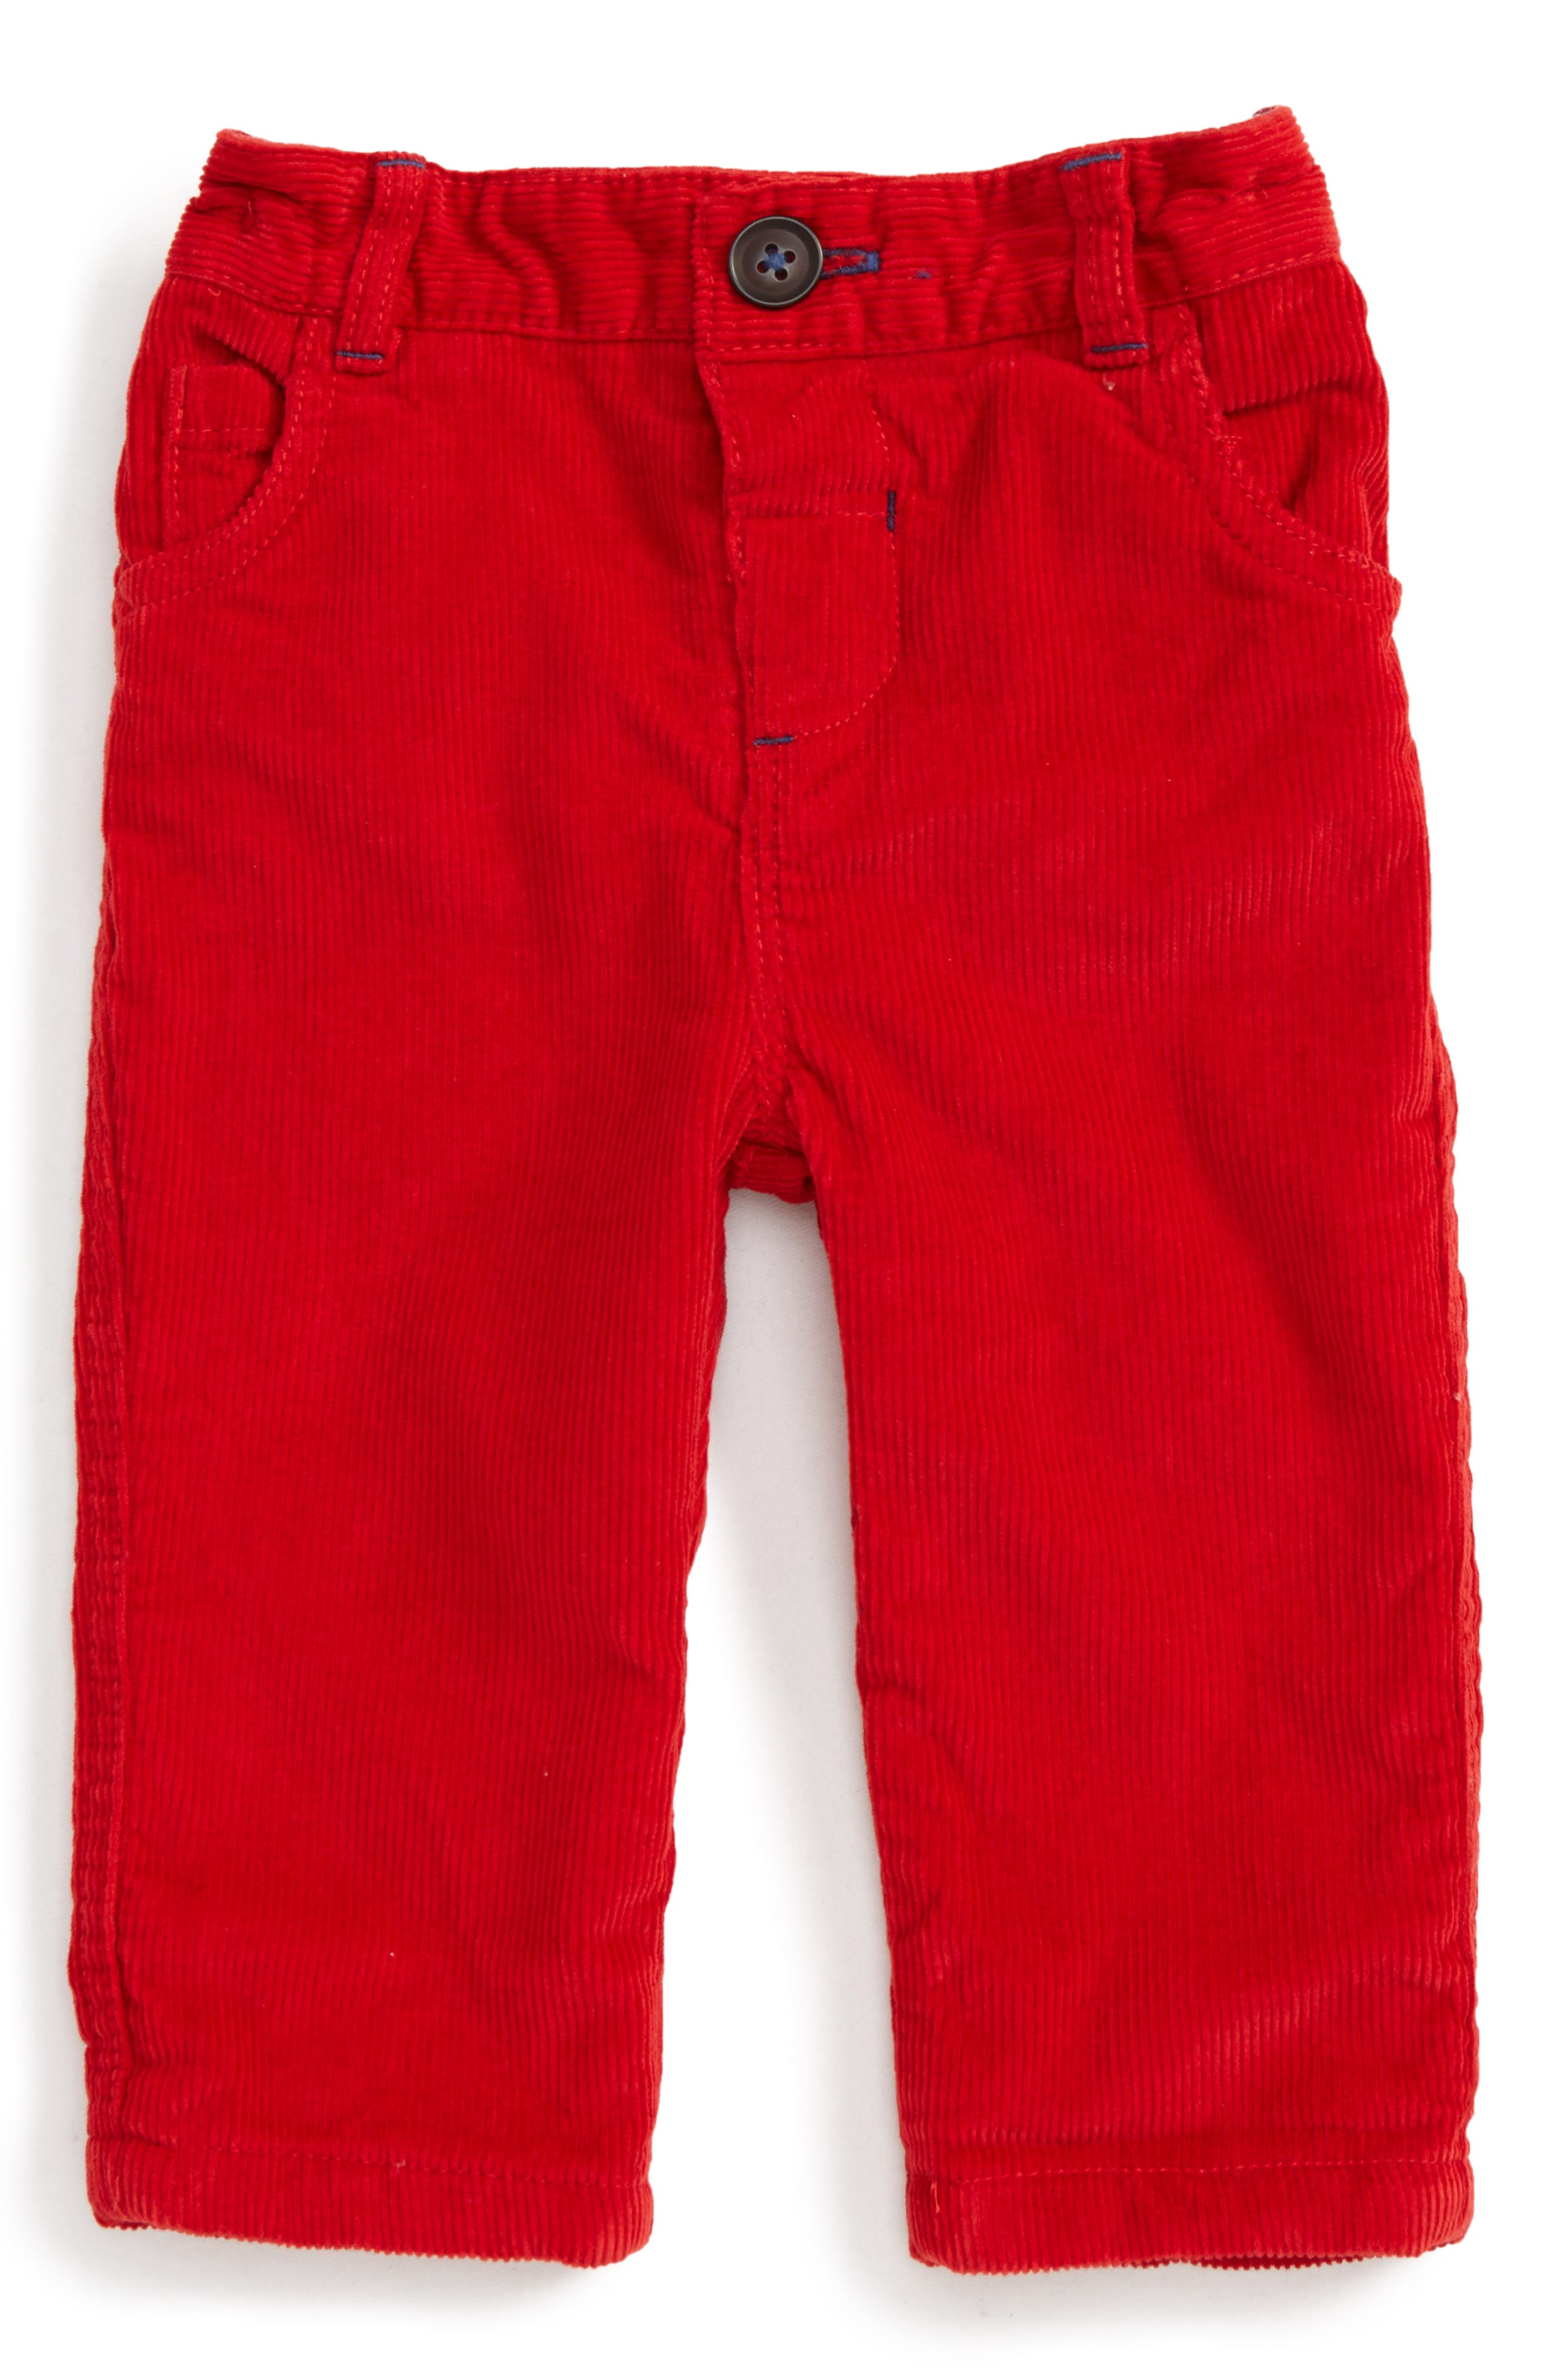 Lined Corduroy Pants,                             Main thumbnail 1, color,                             Red Engine Red